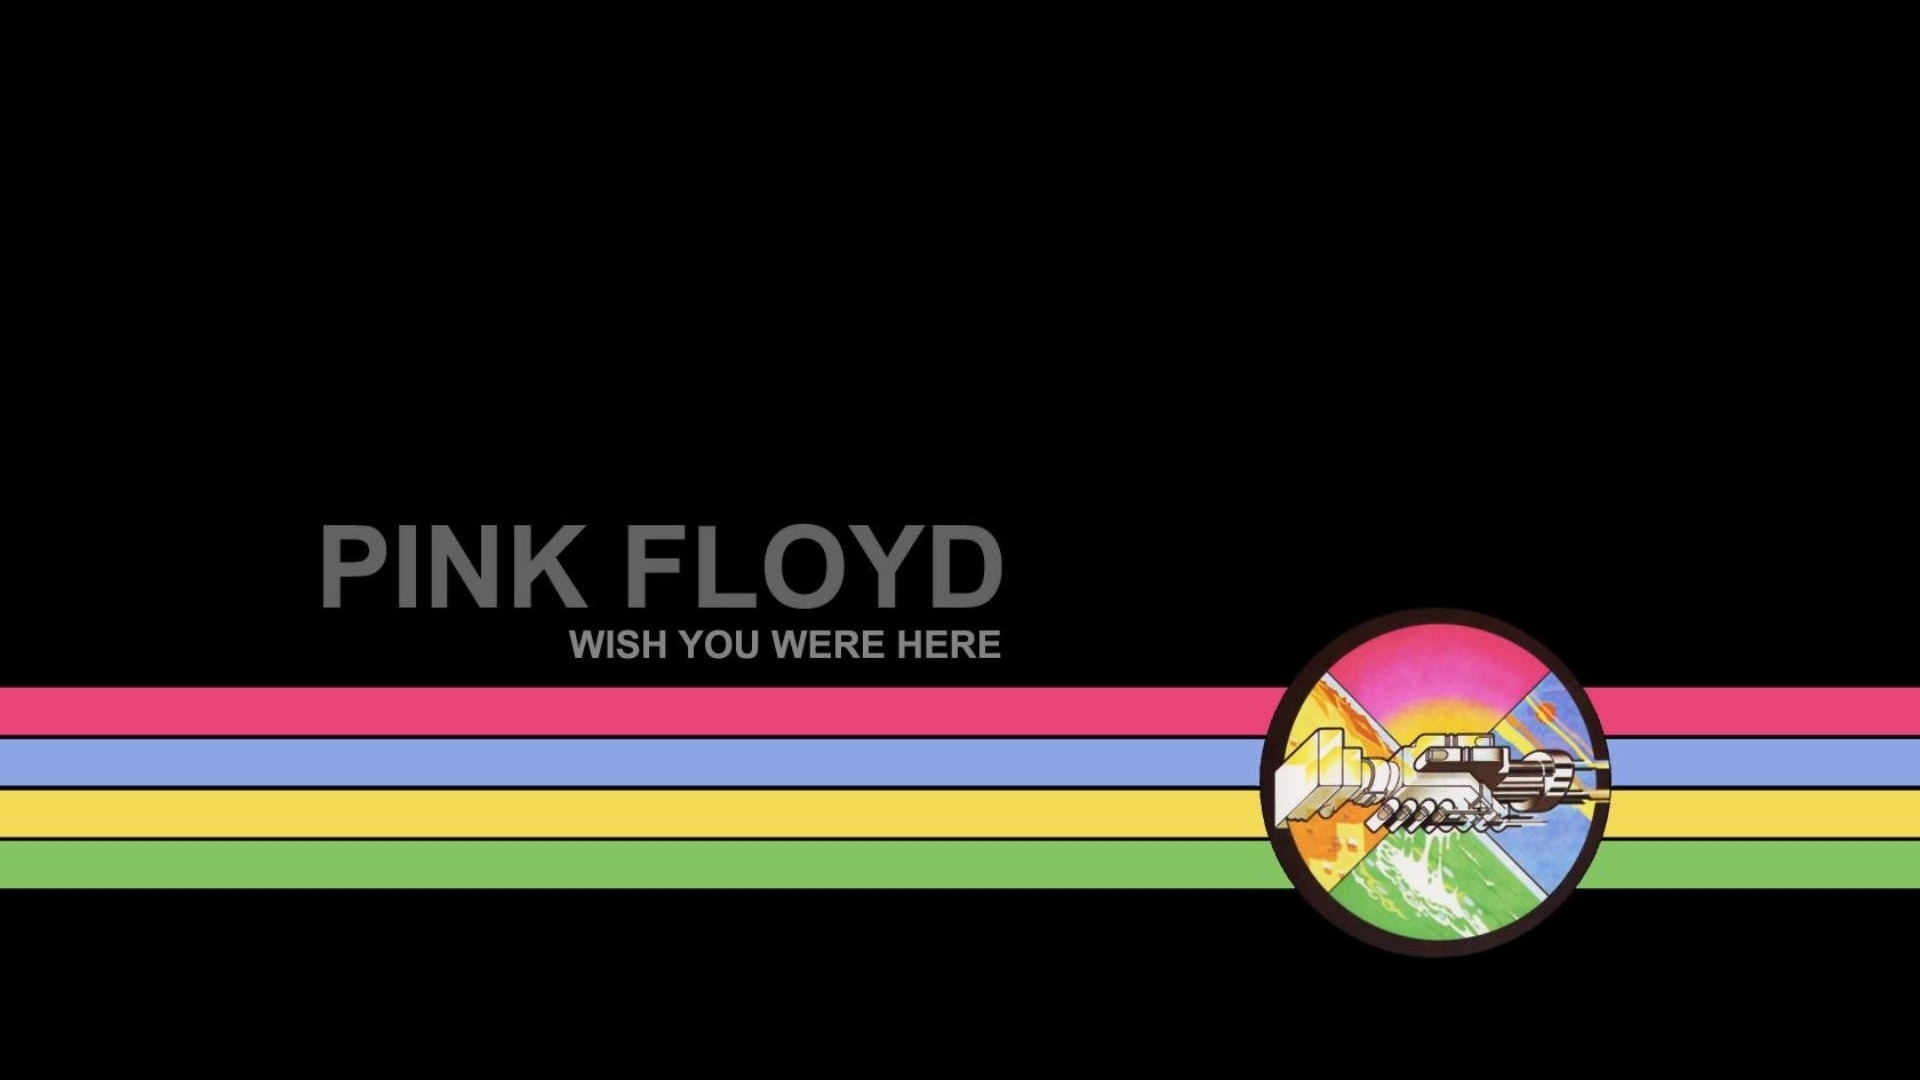 Pink Floyd Wish You Were Here Desktop Full HD Wallpaper